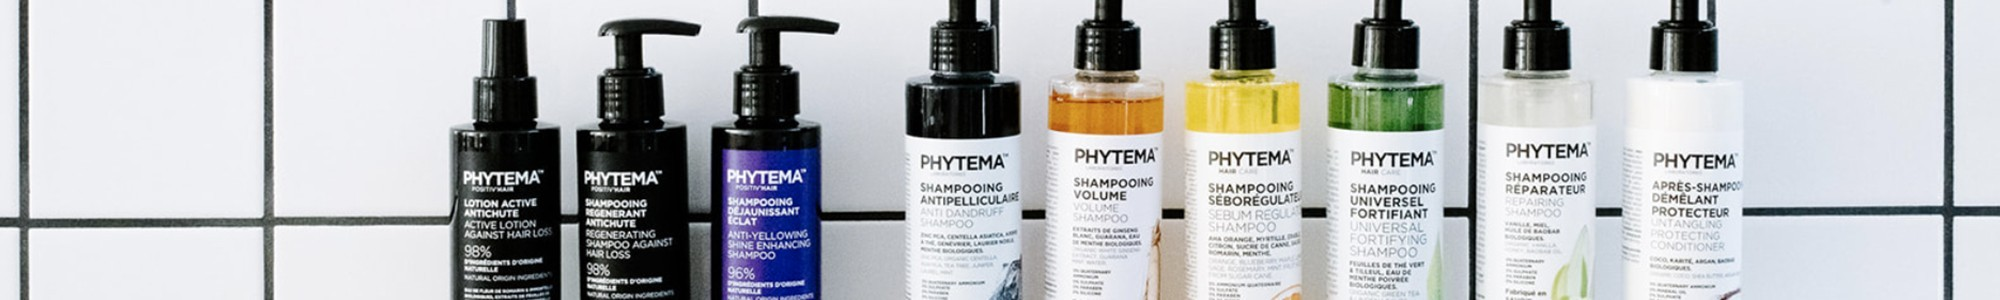 Shampoos and other hair care products with natural and organic extract